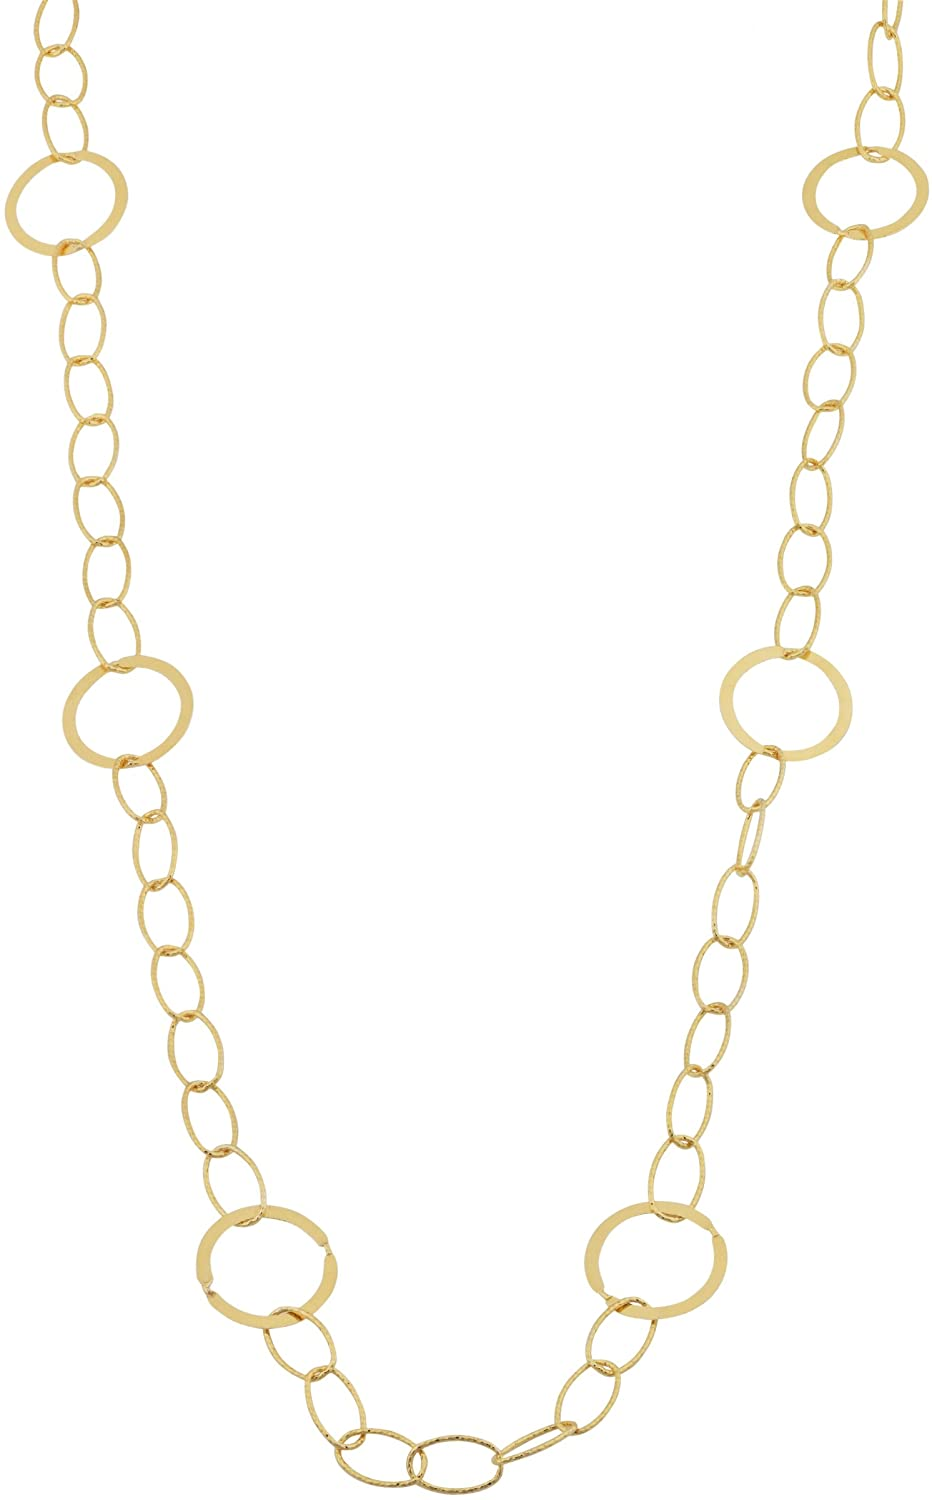 Kooljewelry Yellow Gold Plated Silver Hammered and Polished Circles Station Necklace (60 inch)